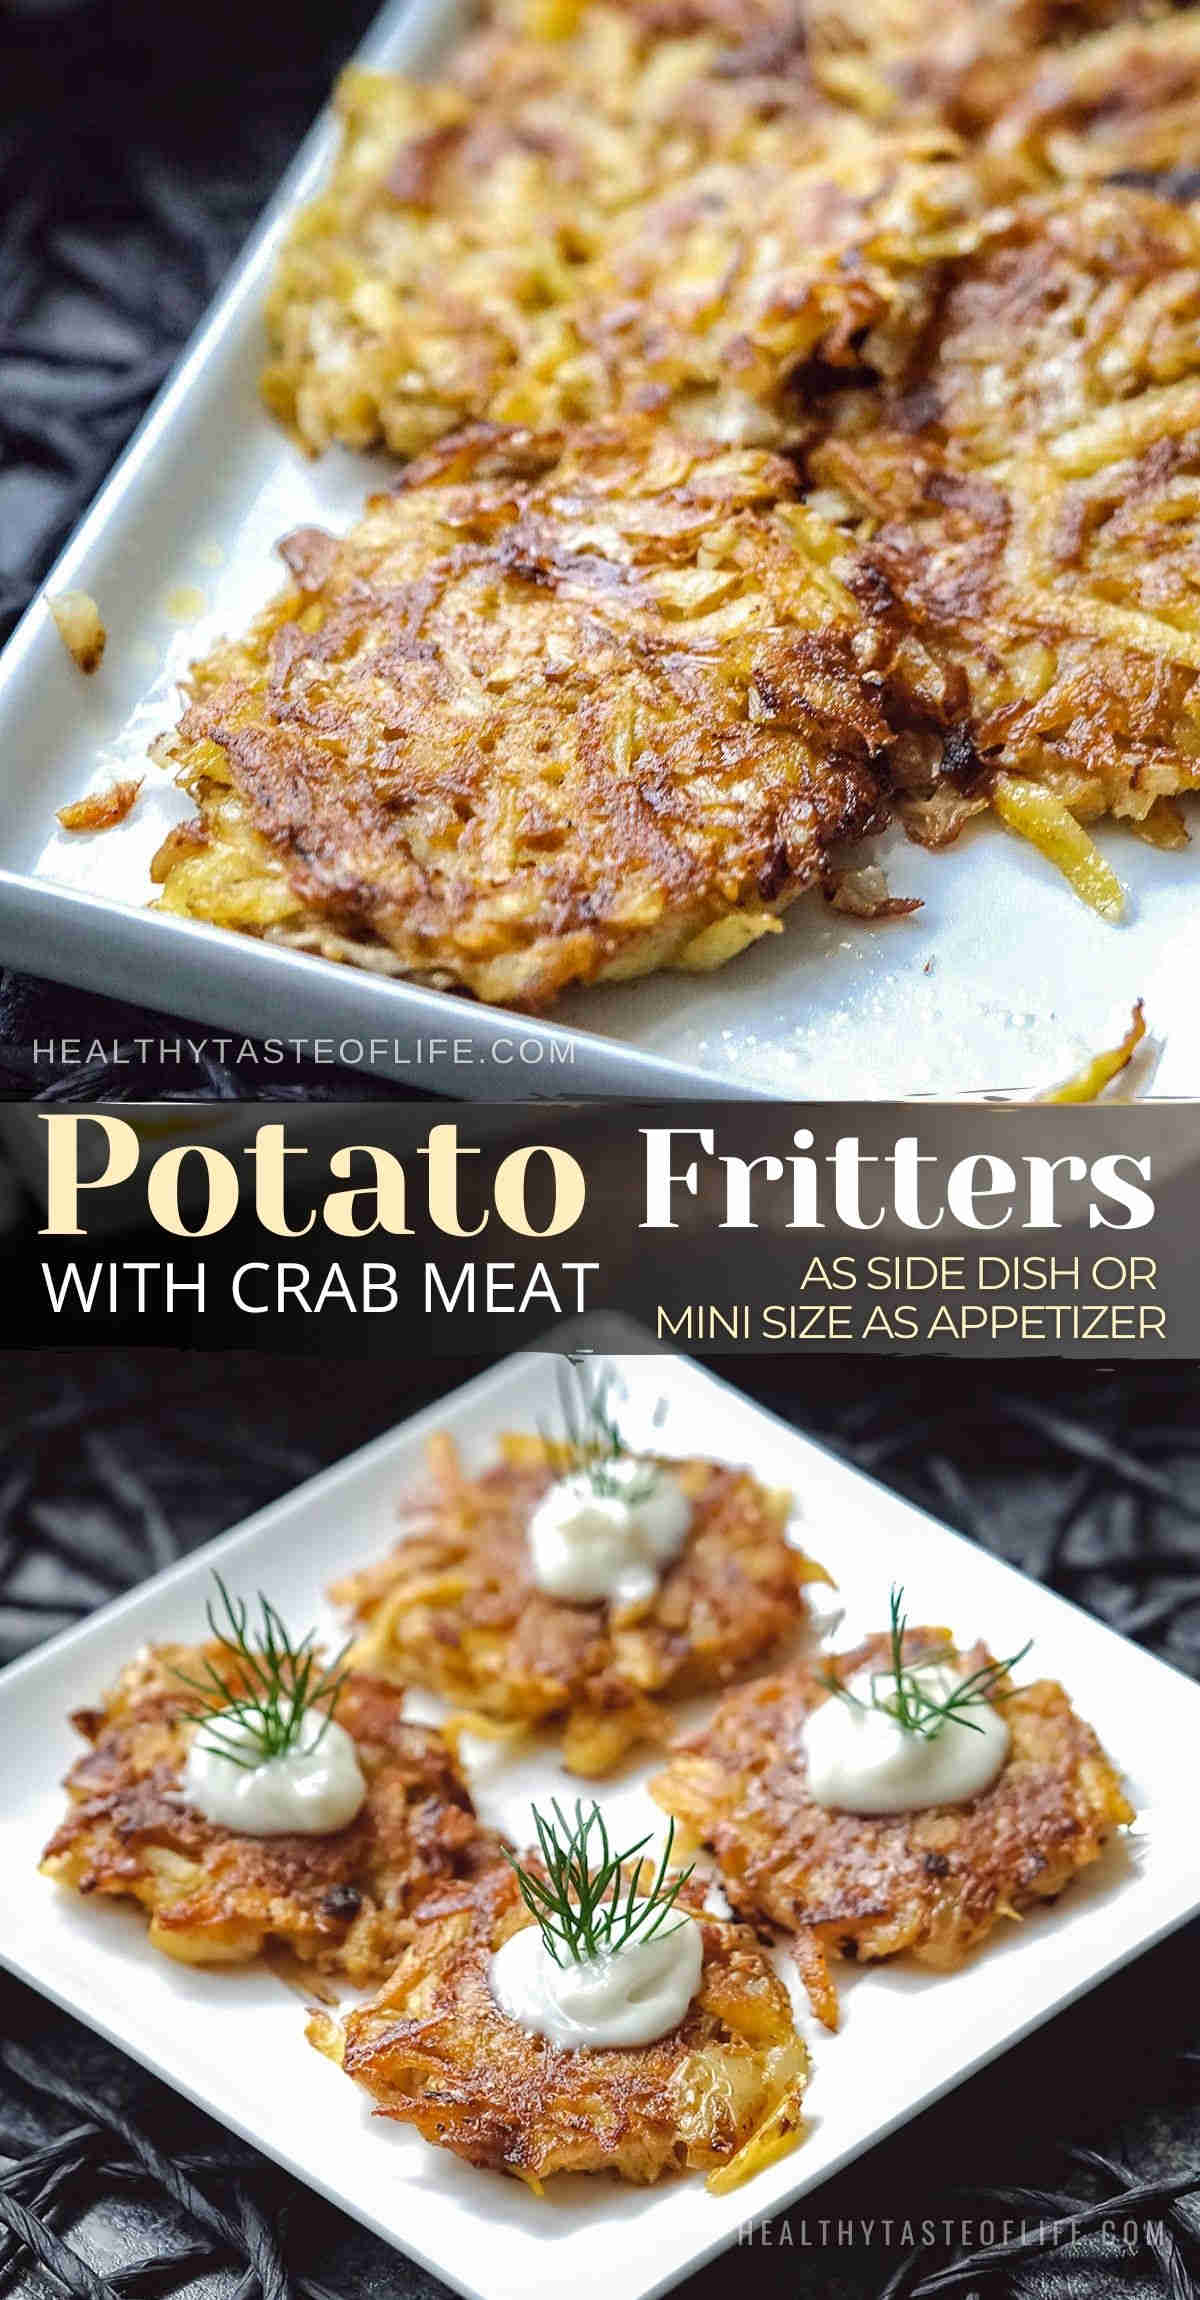 Crispy potato fritters recipe with shredded potatoes and crab meat with soft centers and crispy exterior. Unlike potato pancakes, no flour is needed. These grated potato fritters with crab make a delicious appetizer, finger food or breakfast. You can make big potato fritters as side dish, or snack size for nibbles. Easy healthy potato fritters - gluten free dairy free and paleo friendly. #potatofritters #potatolatkes #potatopancakes #crabfritters #dairyfreeappetizer #glutenfreeappetizer #potato